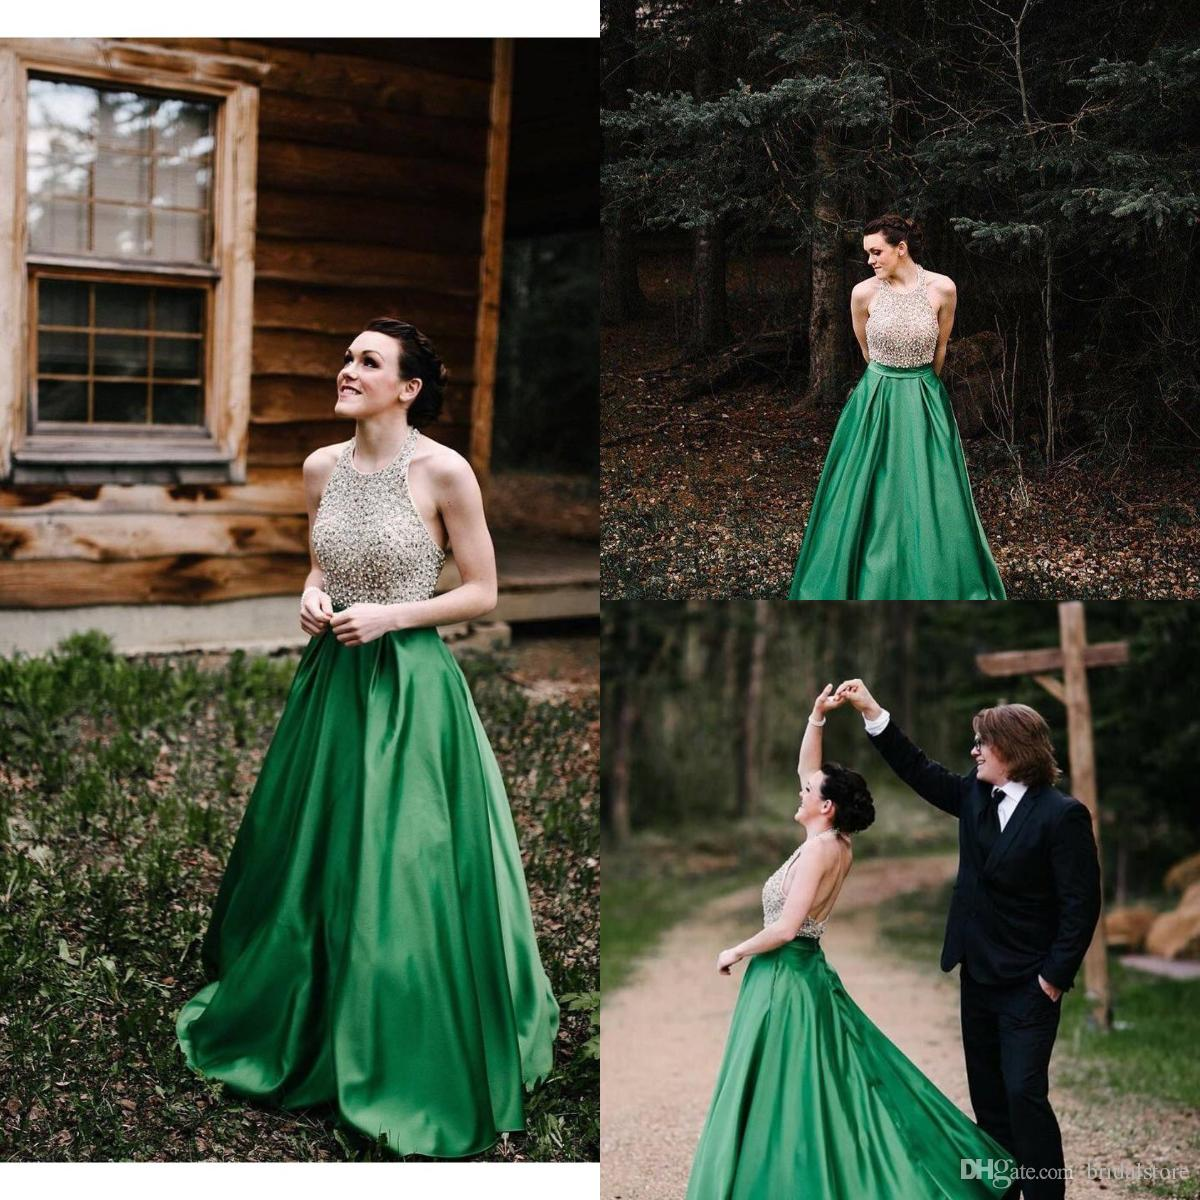 Classics Emerald Top Beaded Prom Dresses Halter Sexy Backless Satin Evening Gowns Country Formal Summer Vintage robes de soirée 2019 aline